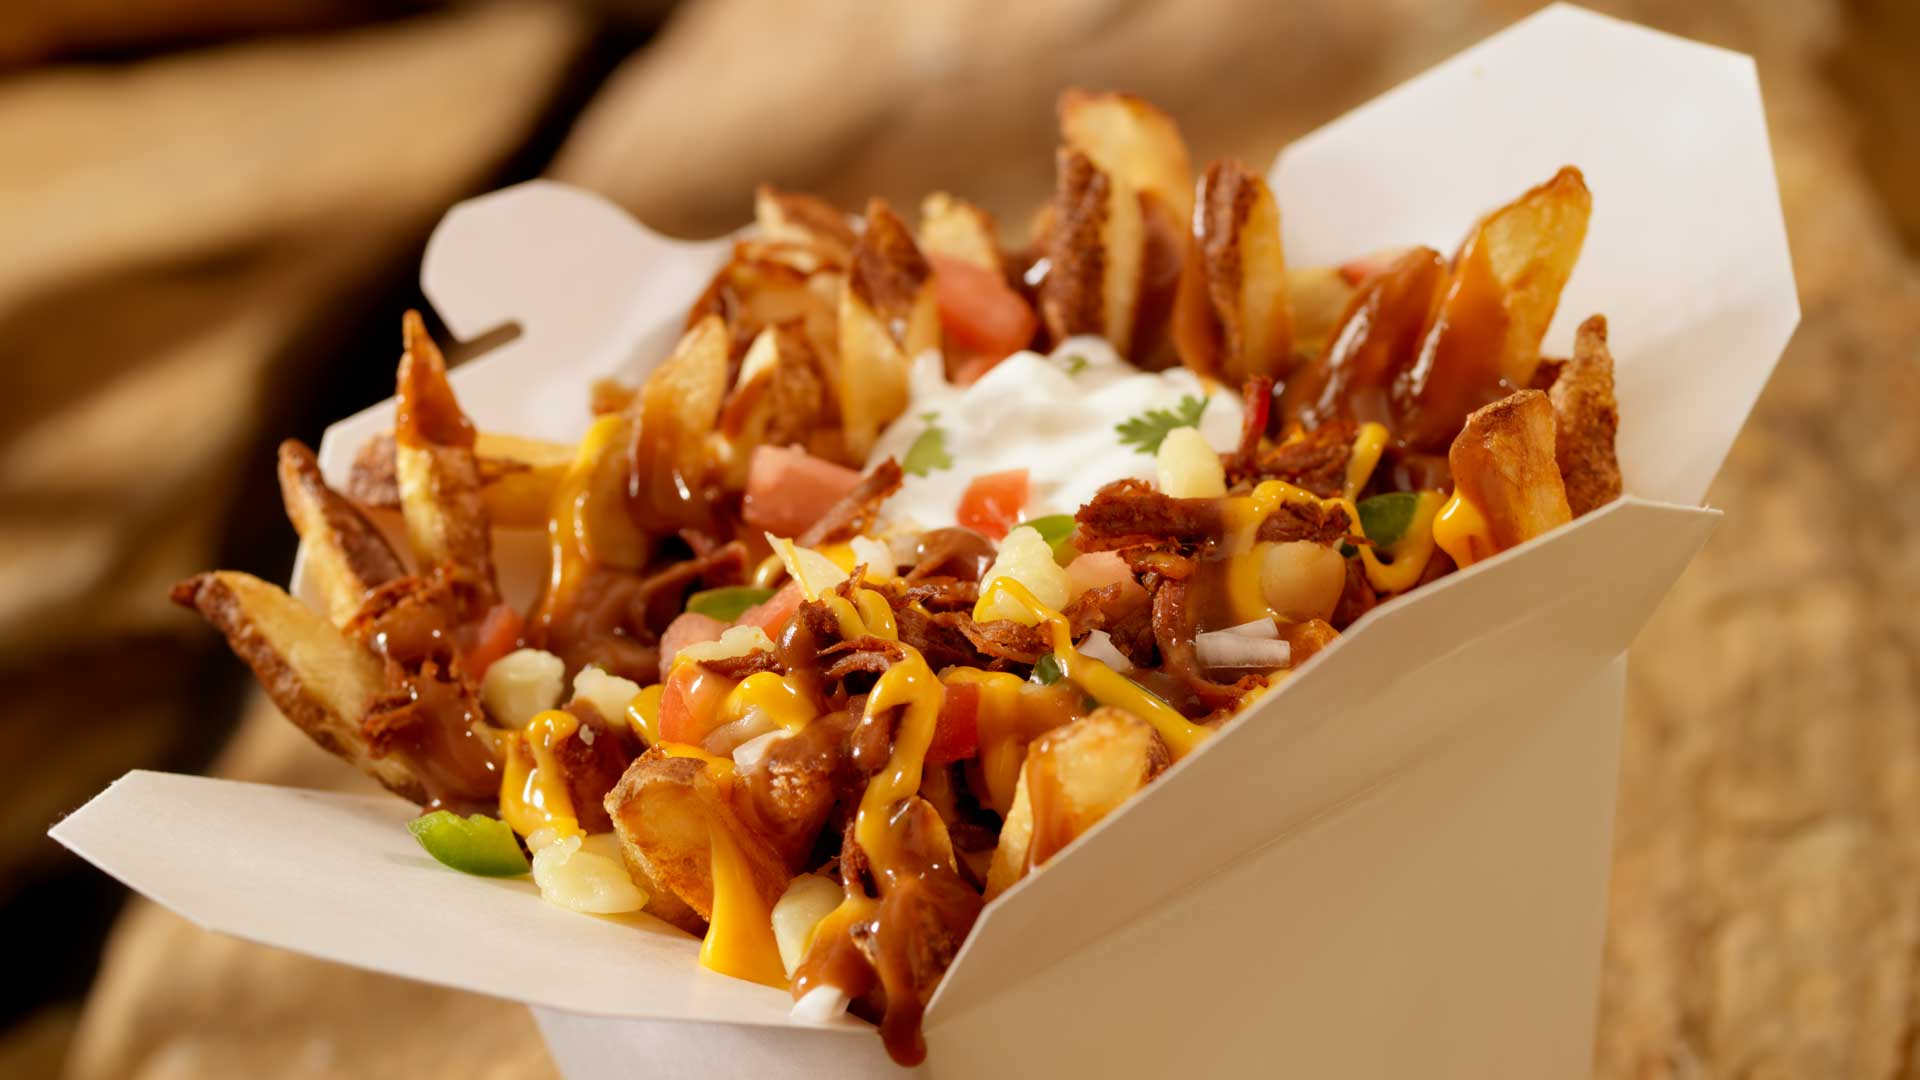 Our delicious Mexican Poutine